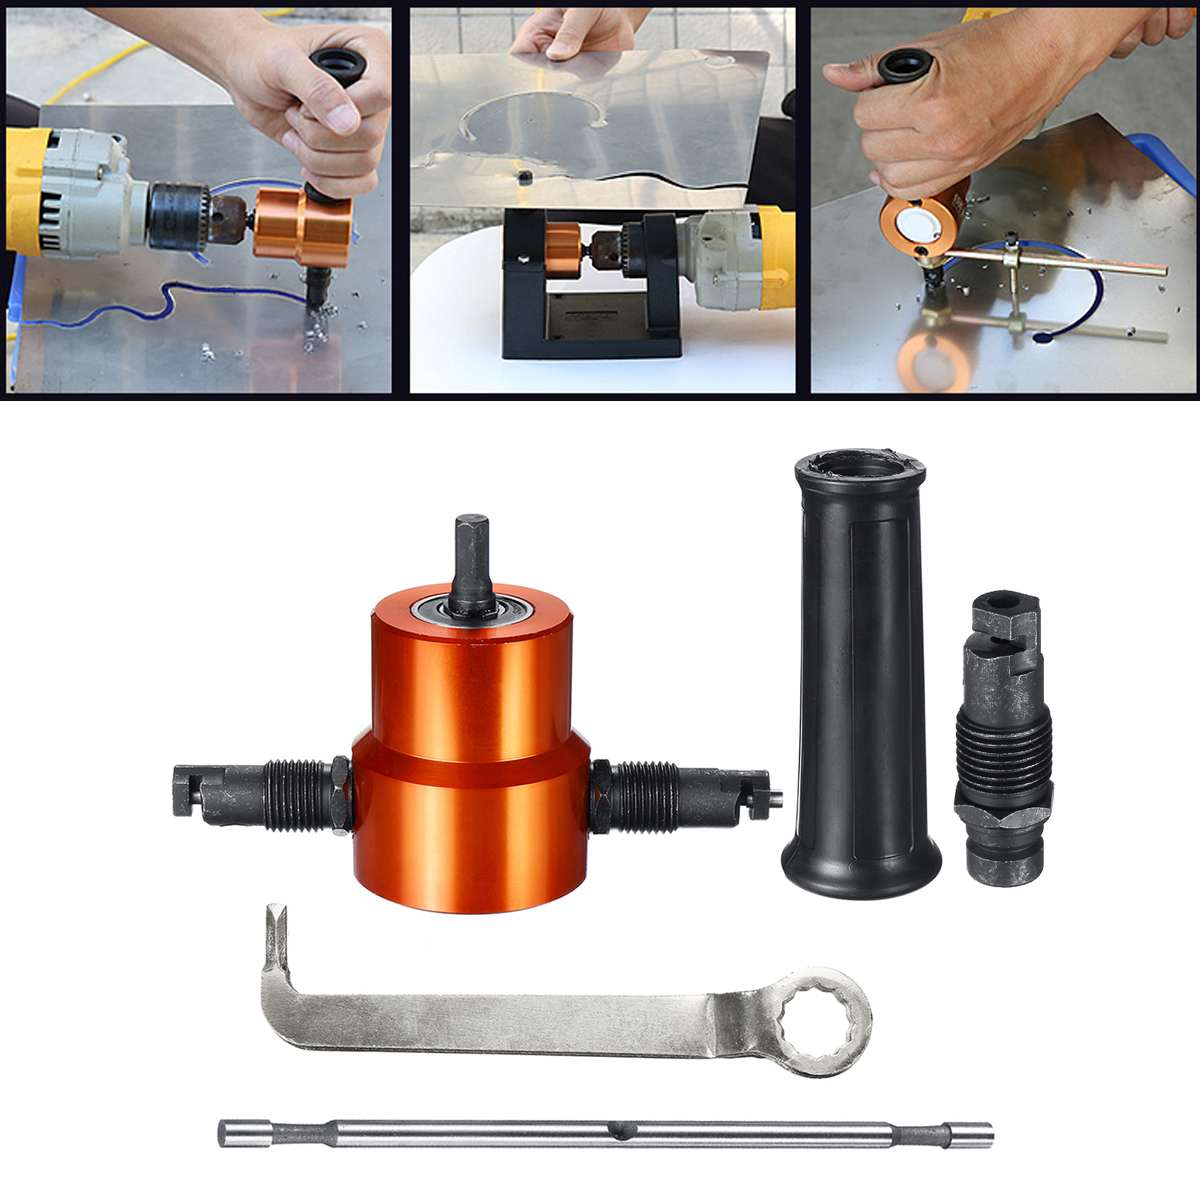 Double Headed Sheet Metal Cutting Nibbler Drill Attachment Metal Free Saw Cutting Tool Tool Plate Open Hole Drill w/Extra PunchDouble Headed Sheet Metal Cutting Nibbler Drill Attachment Metal Free Saw Cutting Tool Tool Plate Open Hole Drill w/Extra Punch